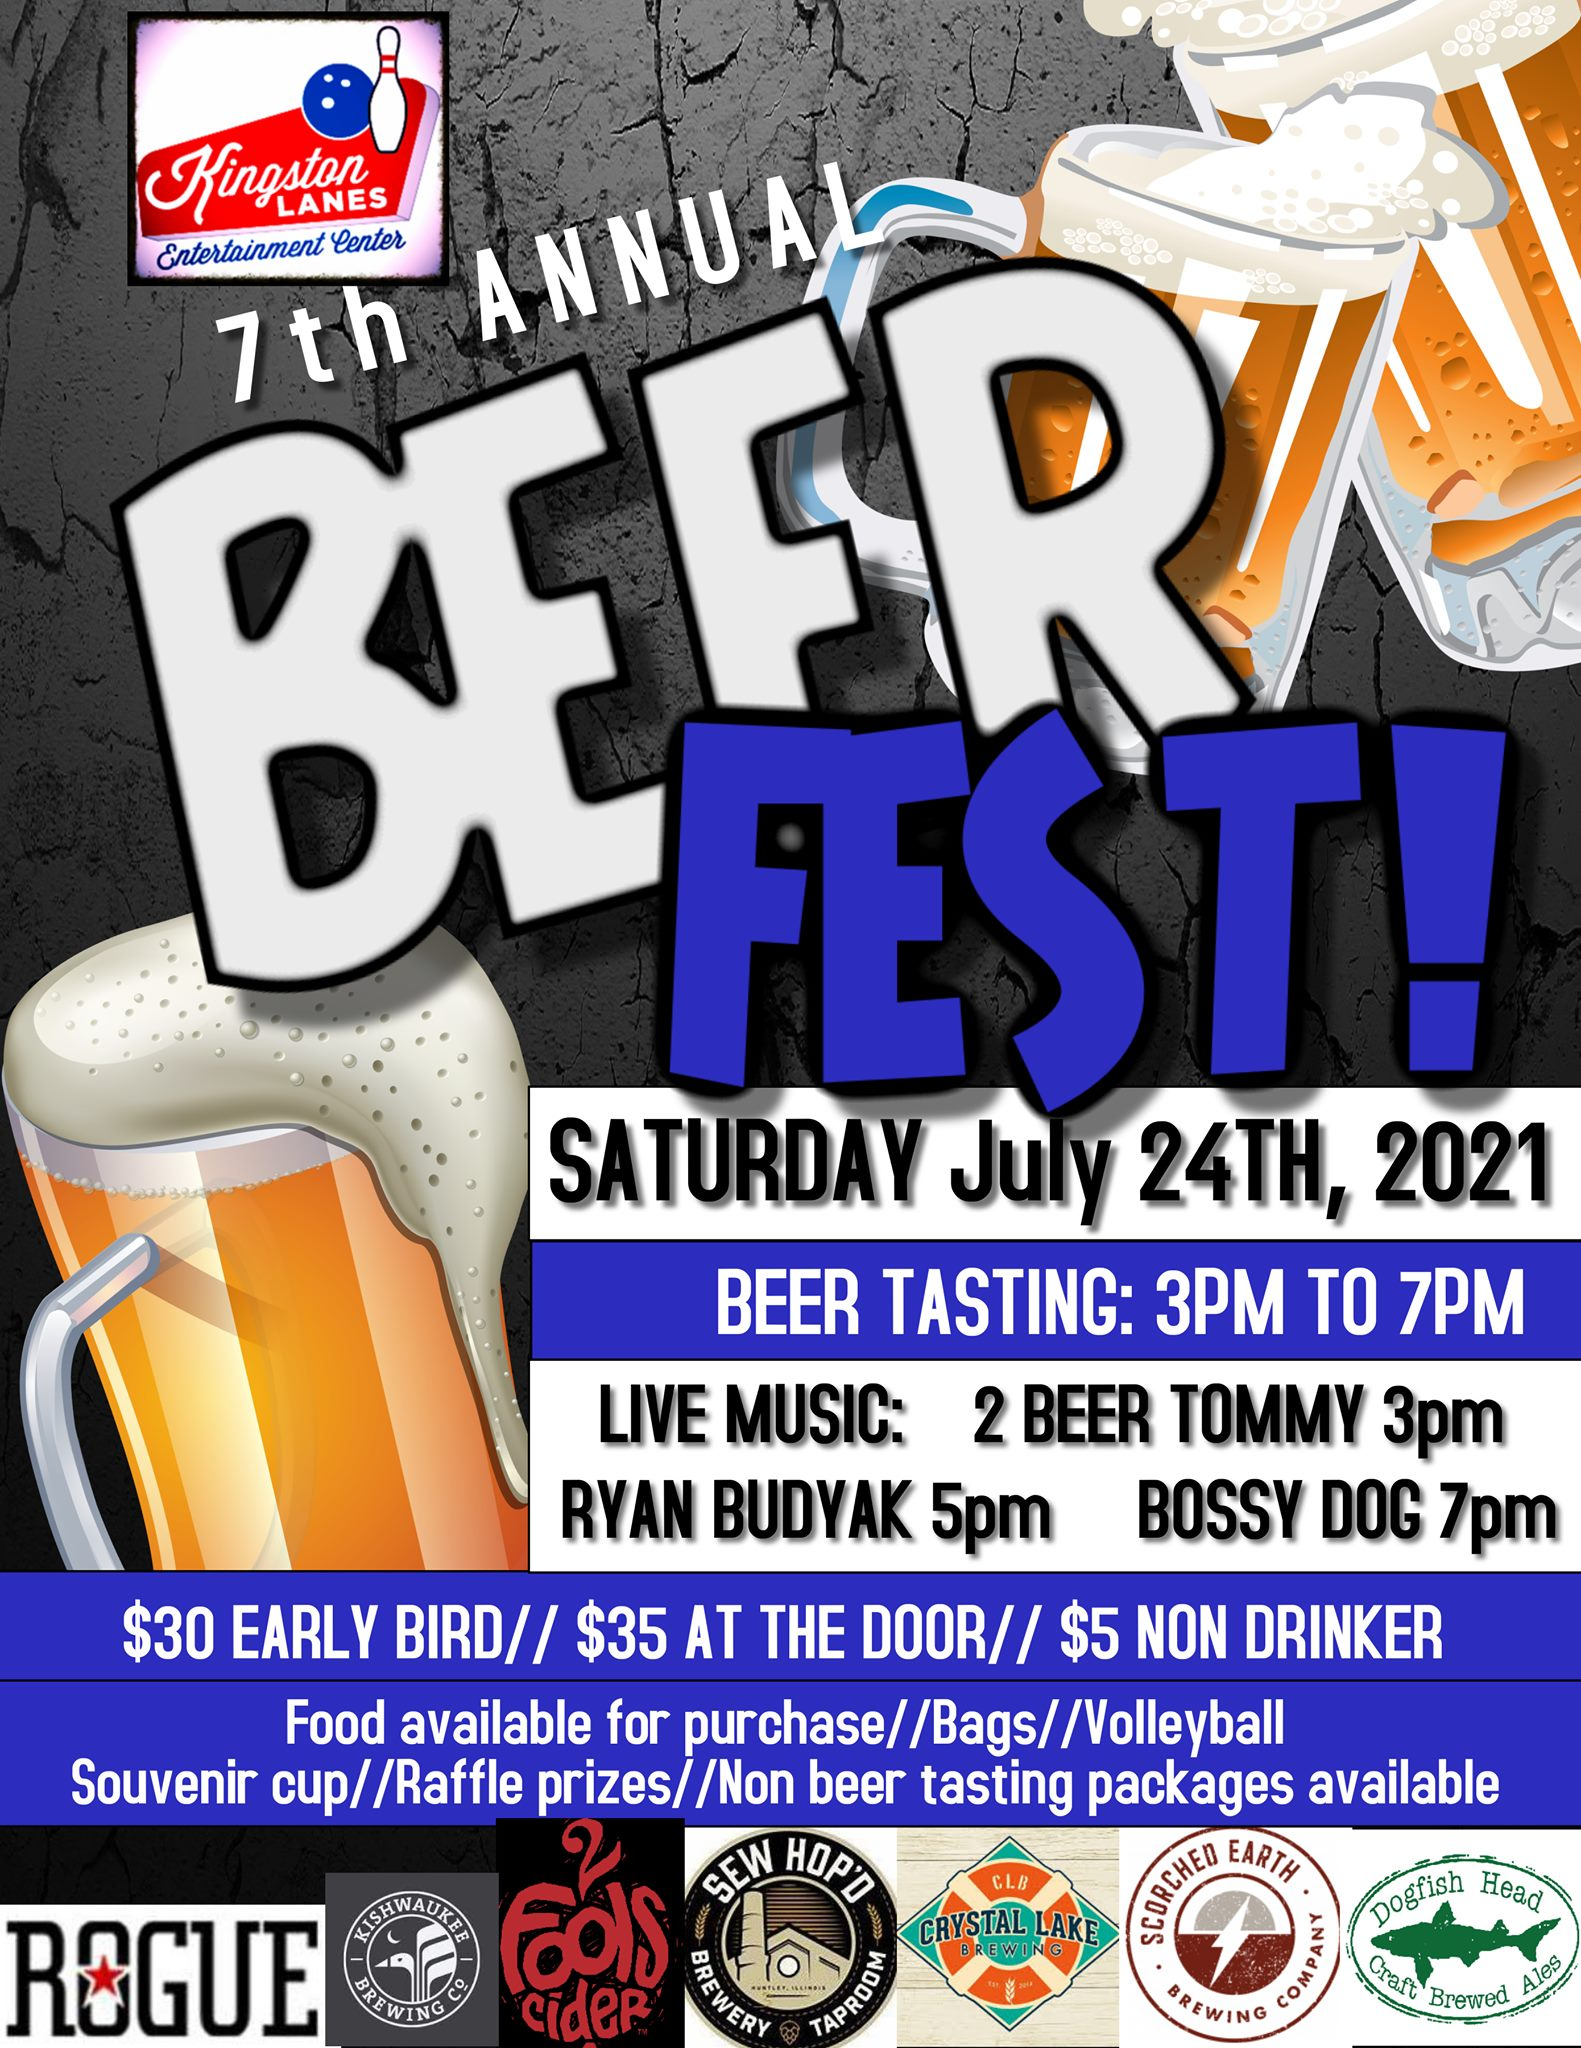 7th Annual Beer Fest at Kingston Lanes